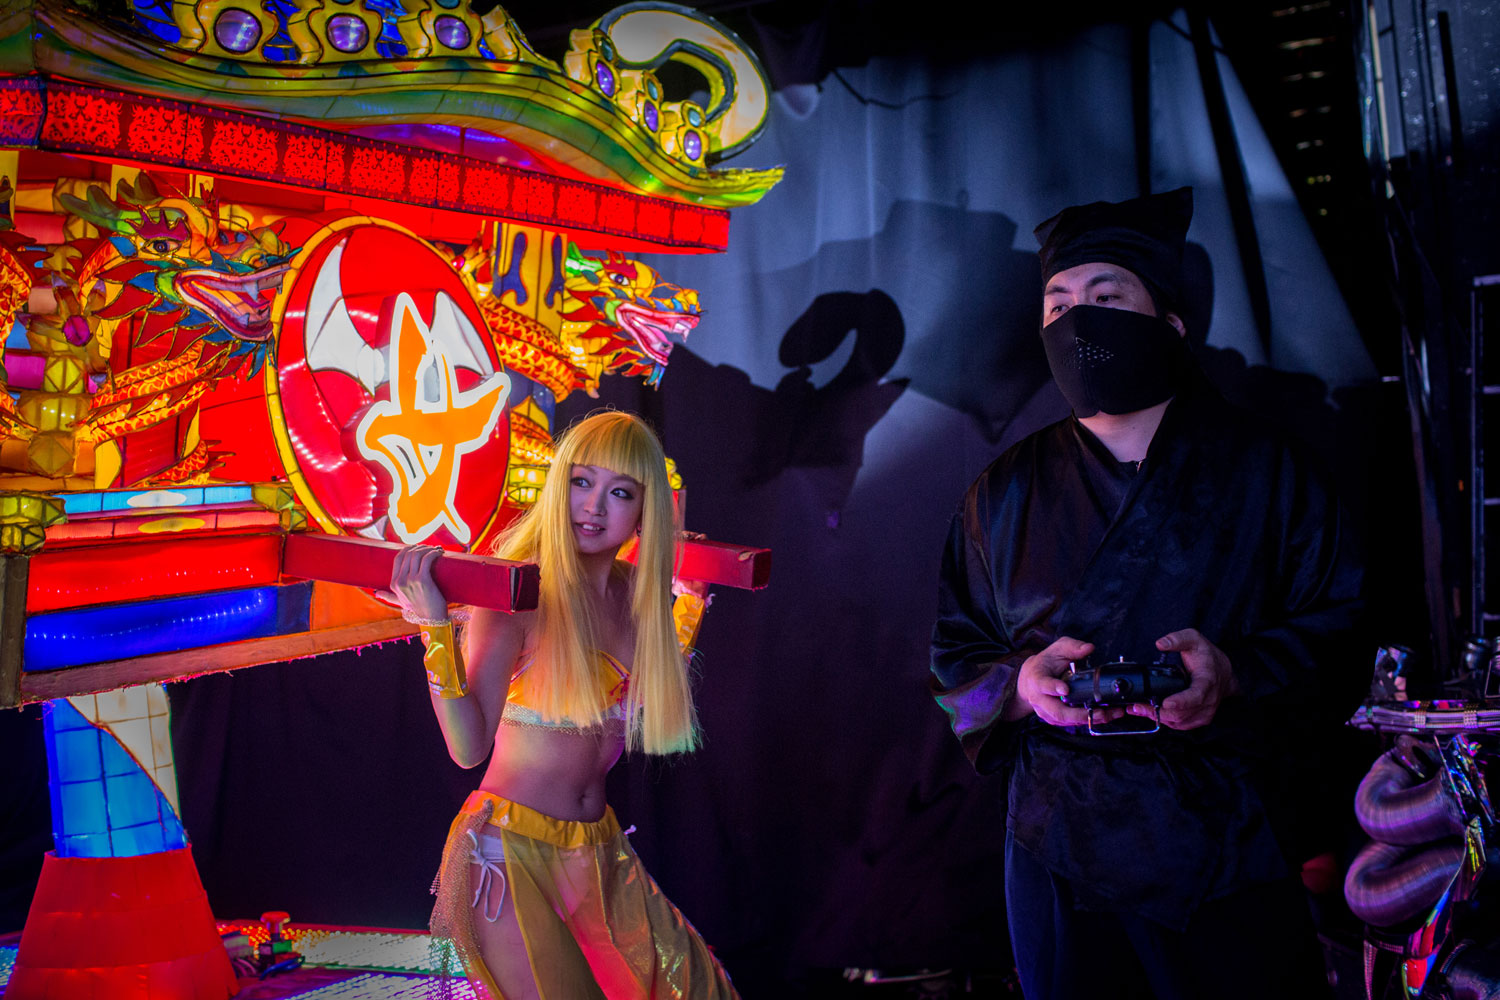 A stage hand dressed as a ninja controls a vehicle by remote control during a show at The Robot Restaurant on June 29, 2014 in Tokyo.